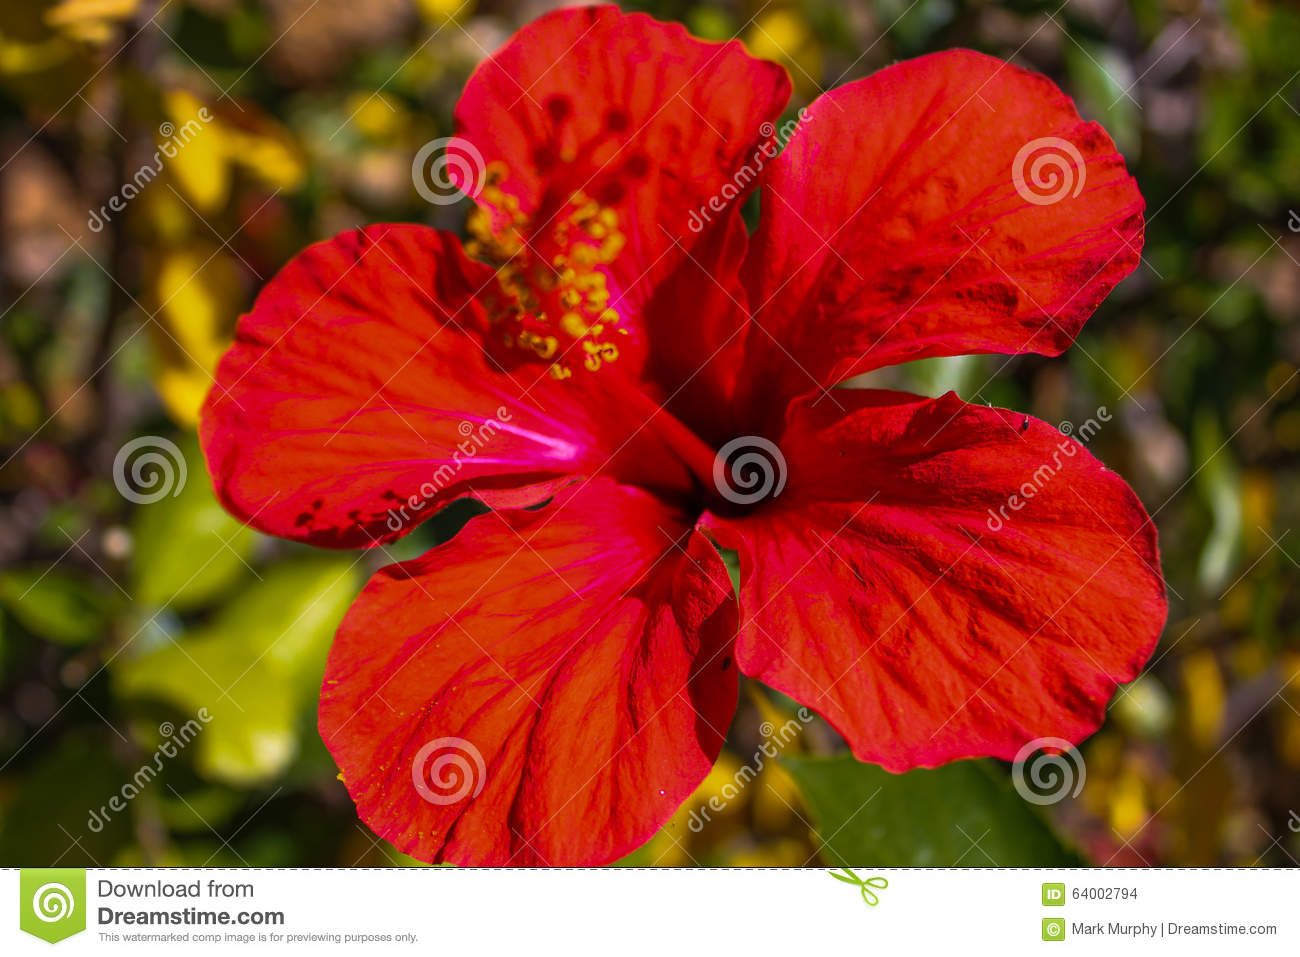 Marcophotography Of Spanish Flower Stock Photo Image Of Hibiscus